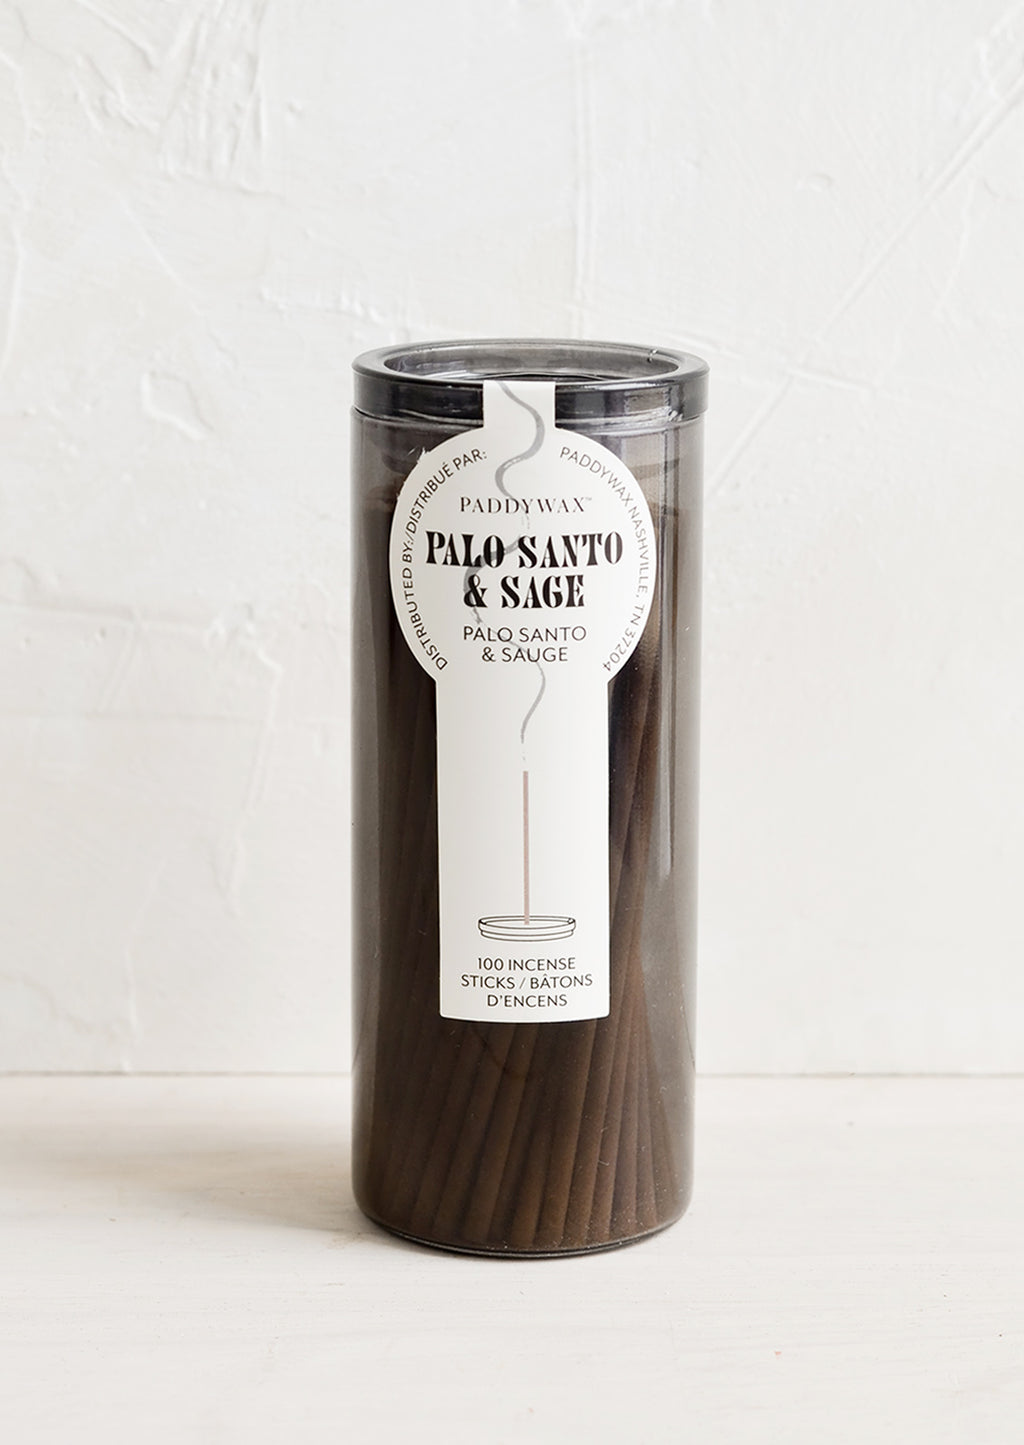 Palo Santo & Sage: A grey glass jar with incense sticks in palo santo scent.